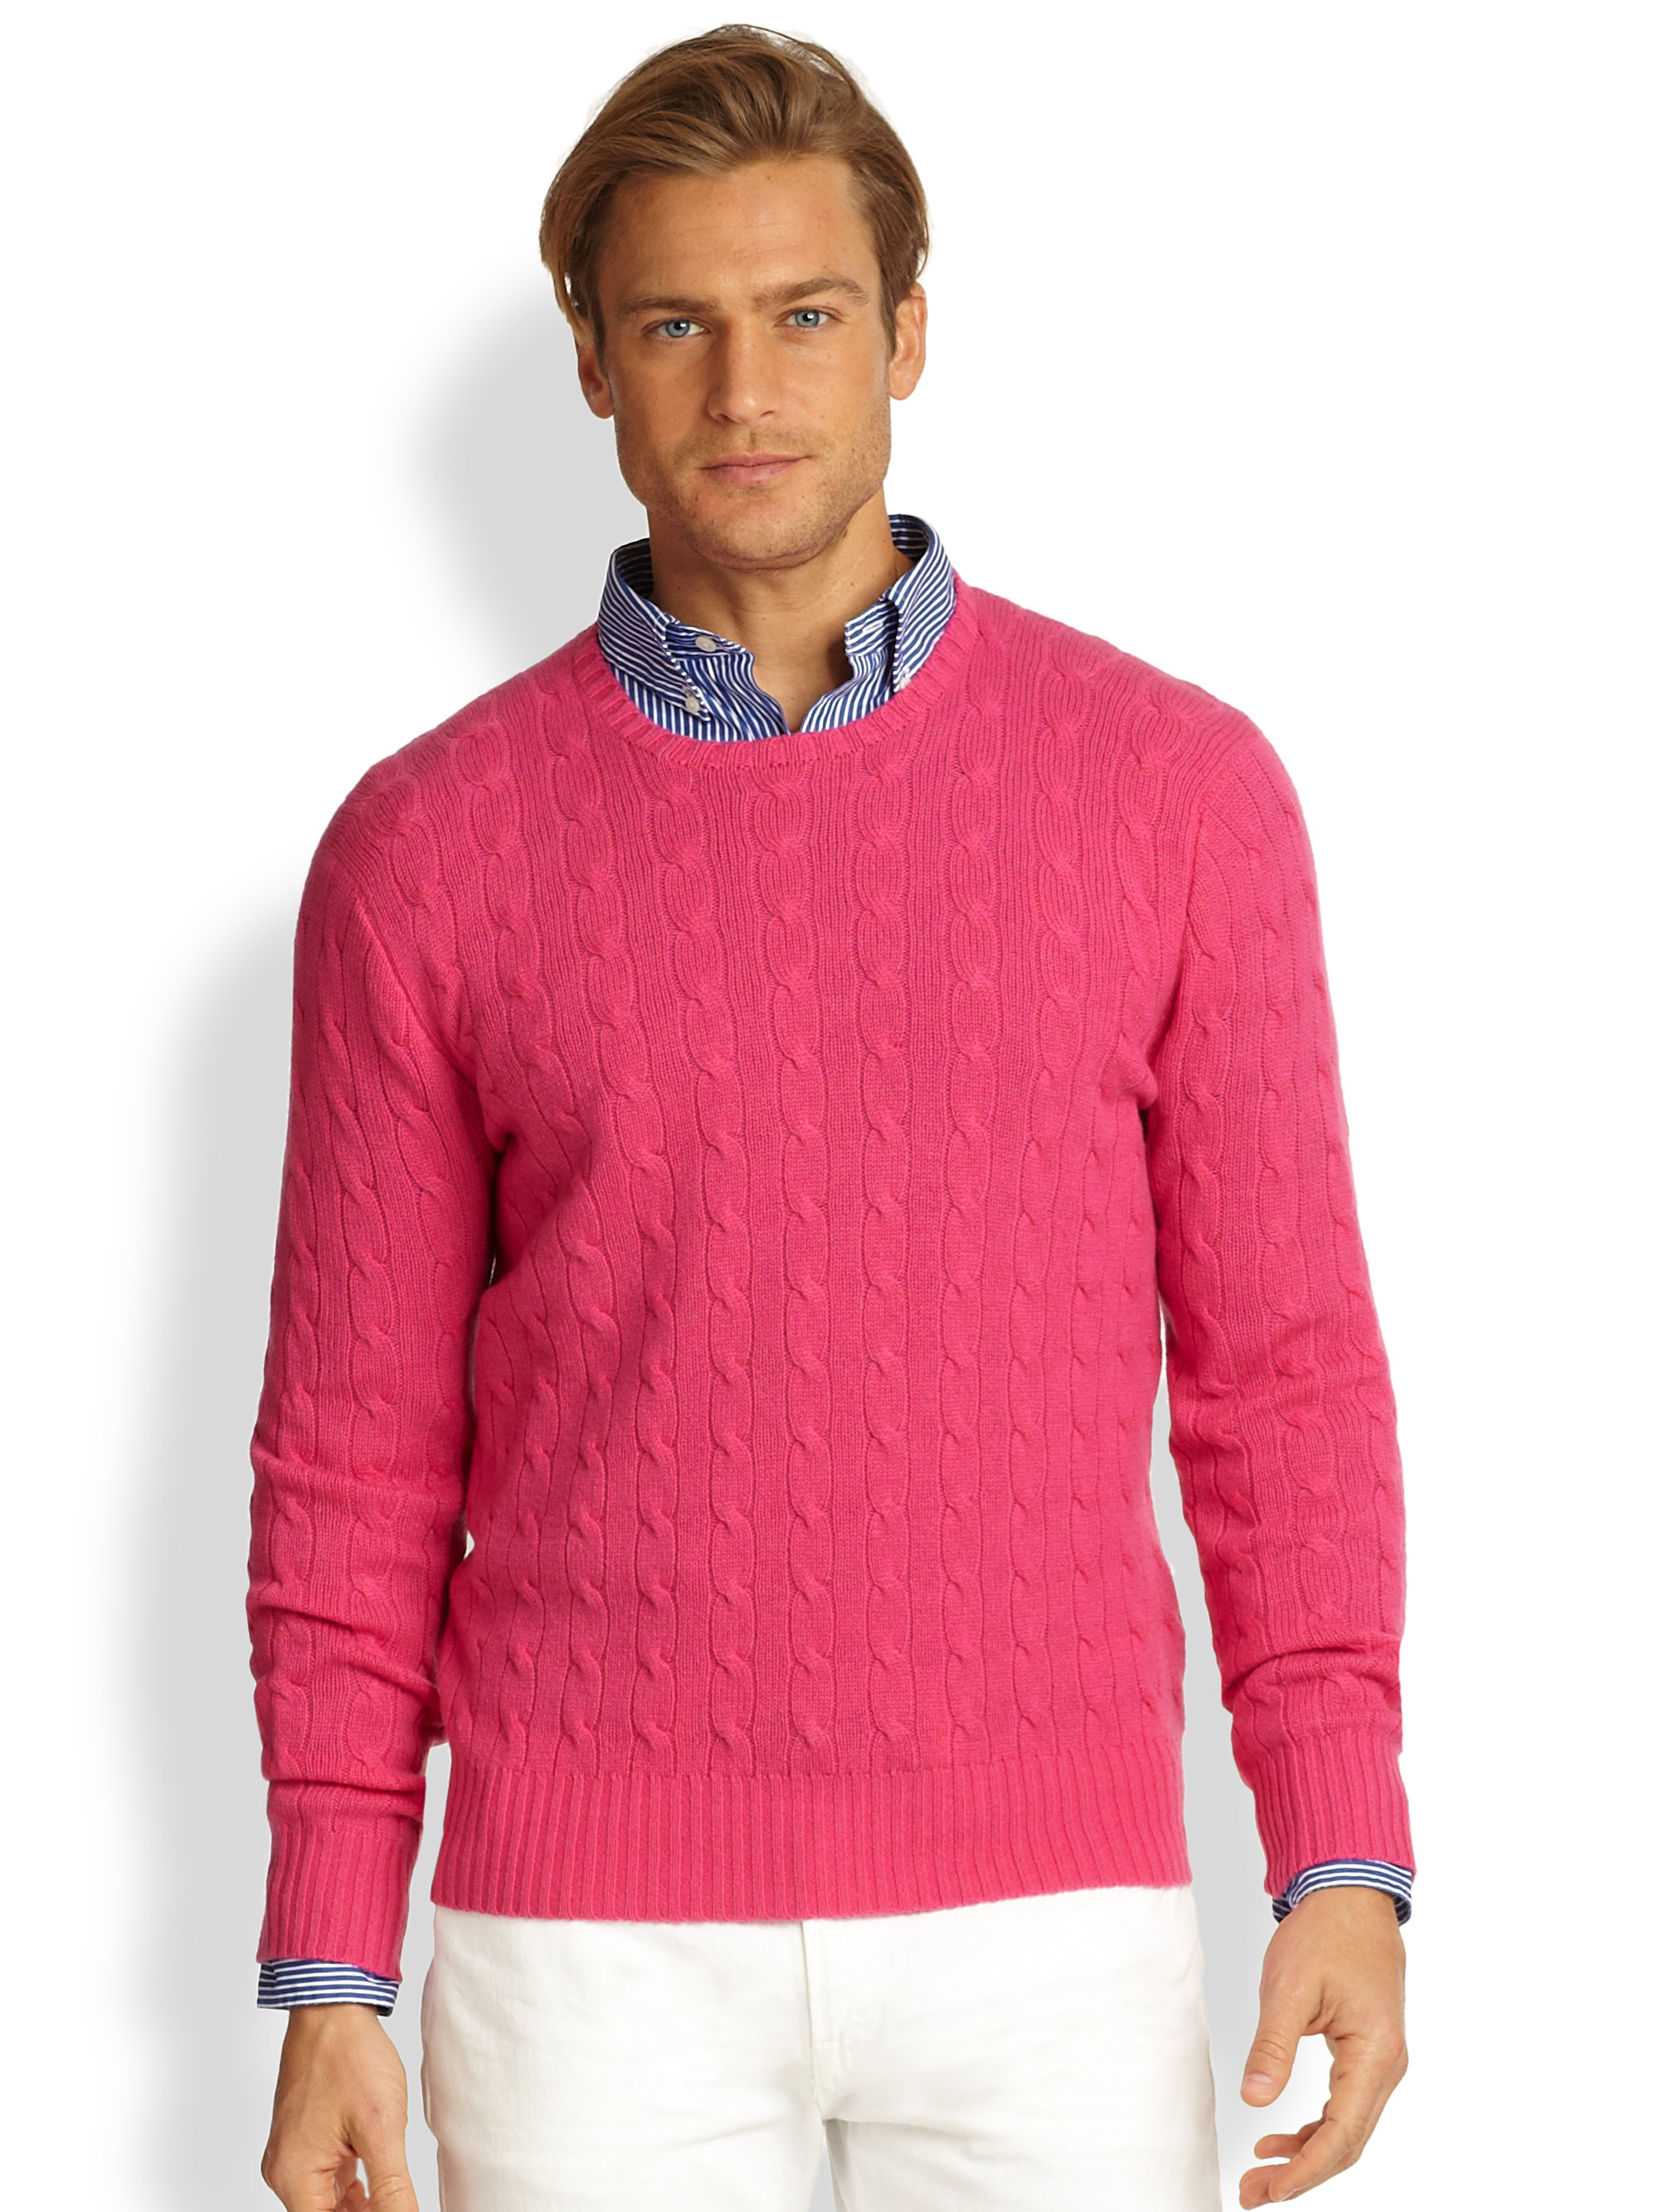 Polo Ralph Lauren Cableknit Cashmere Sweater In Pink For